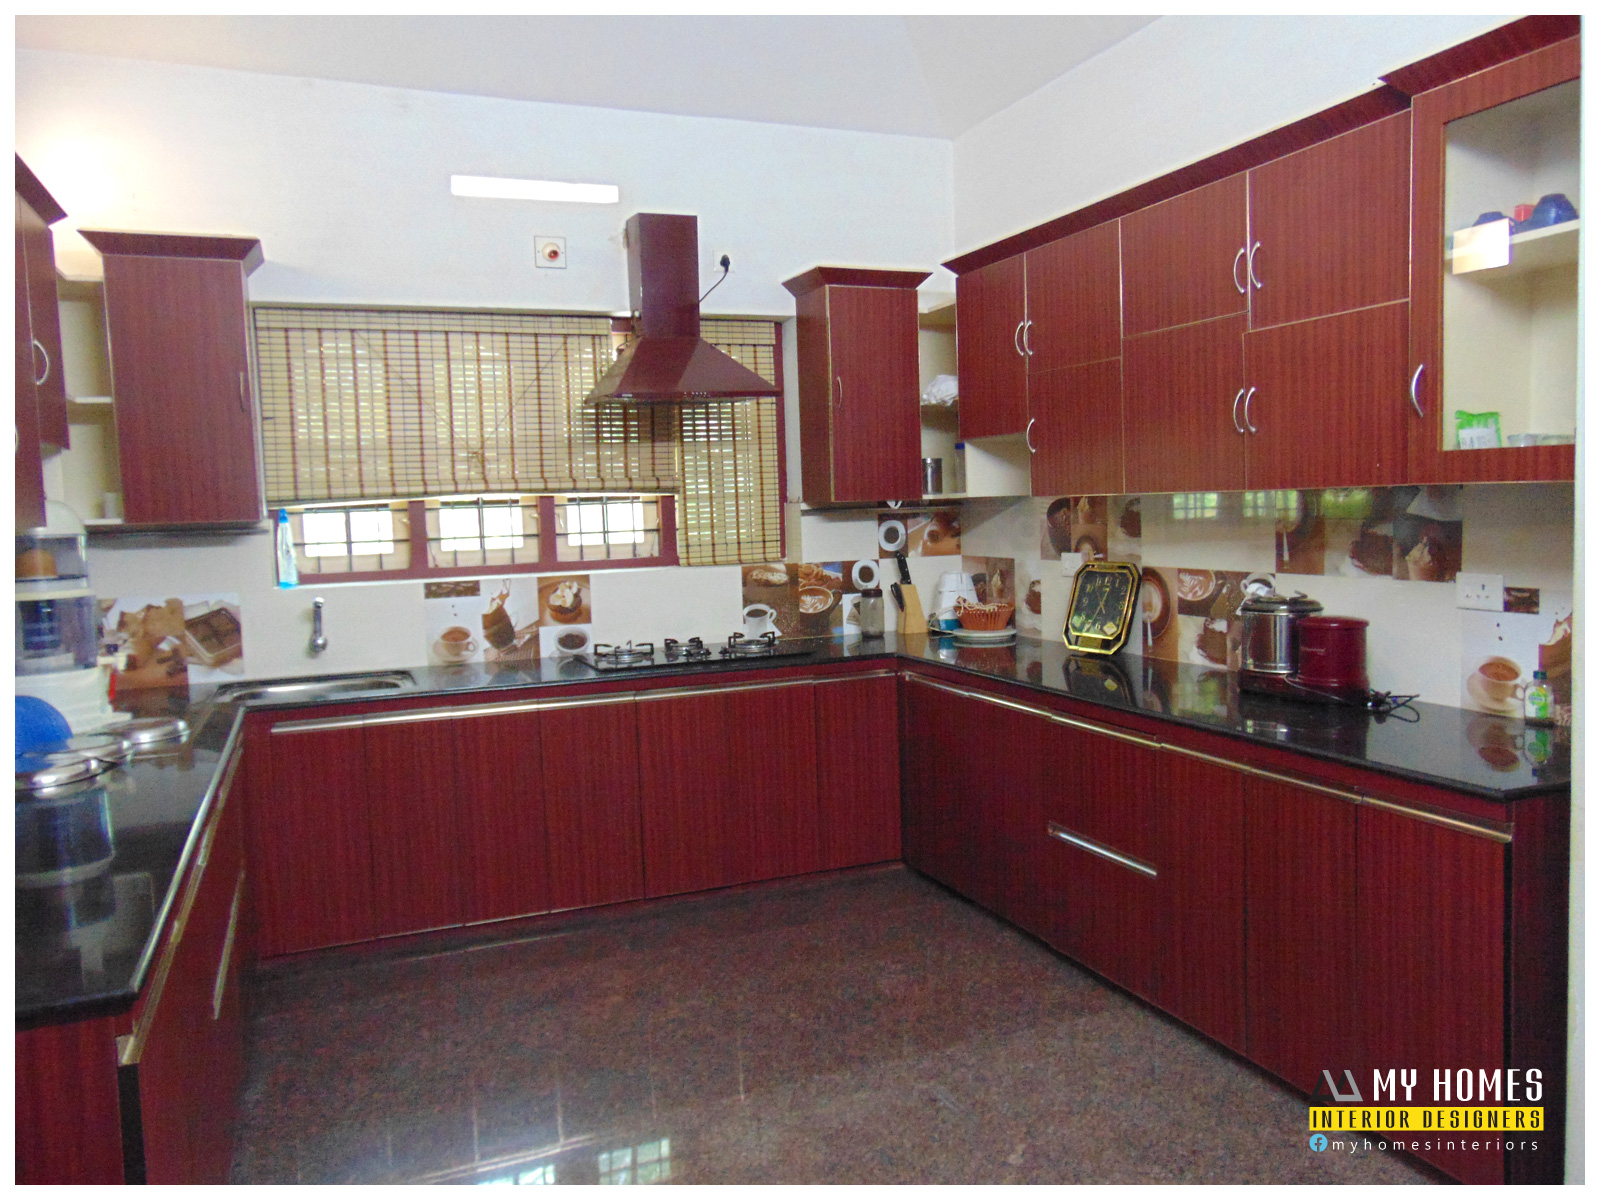 Traditional homes house interior pooja room designs kerala - Interior designs of houses and kitchens ...